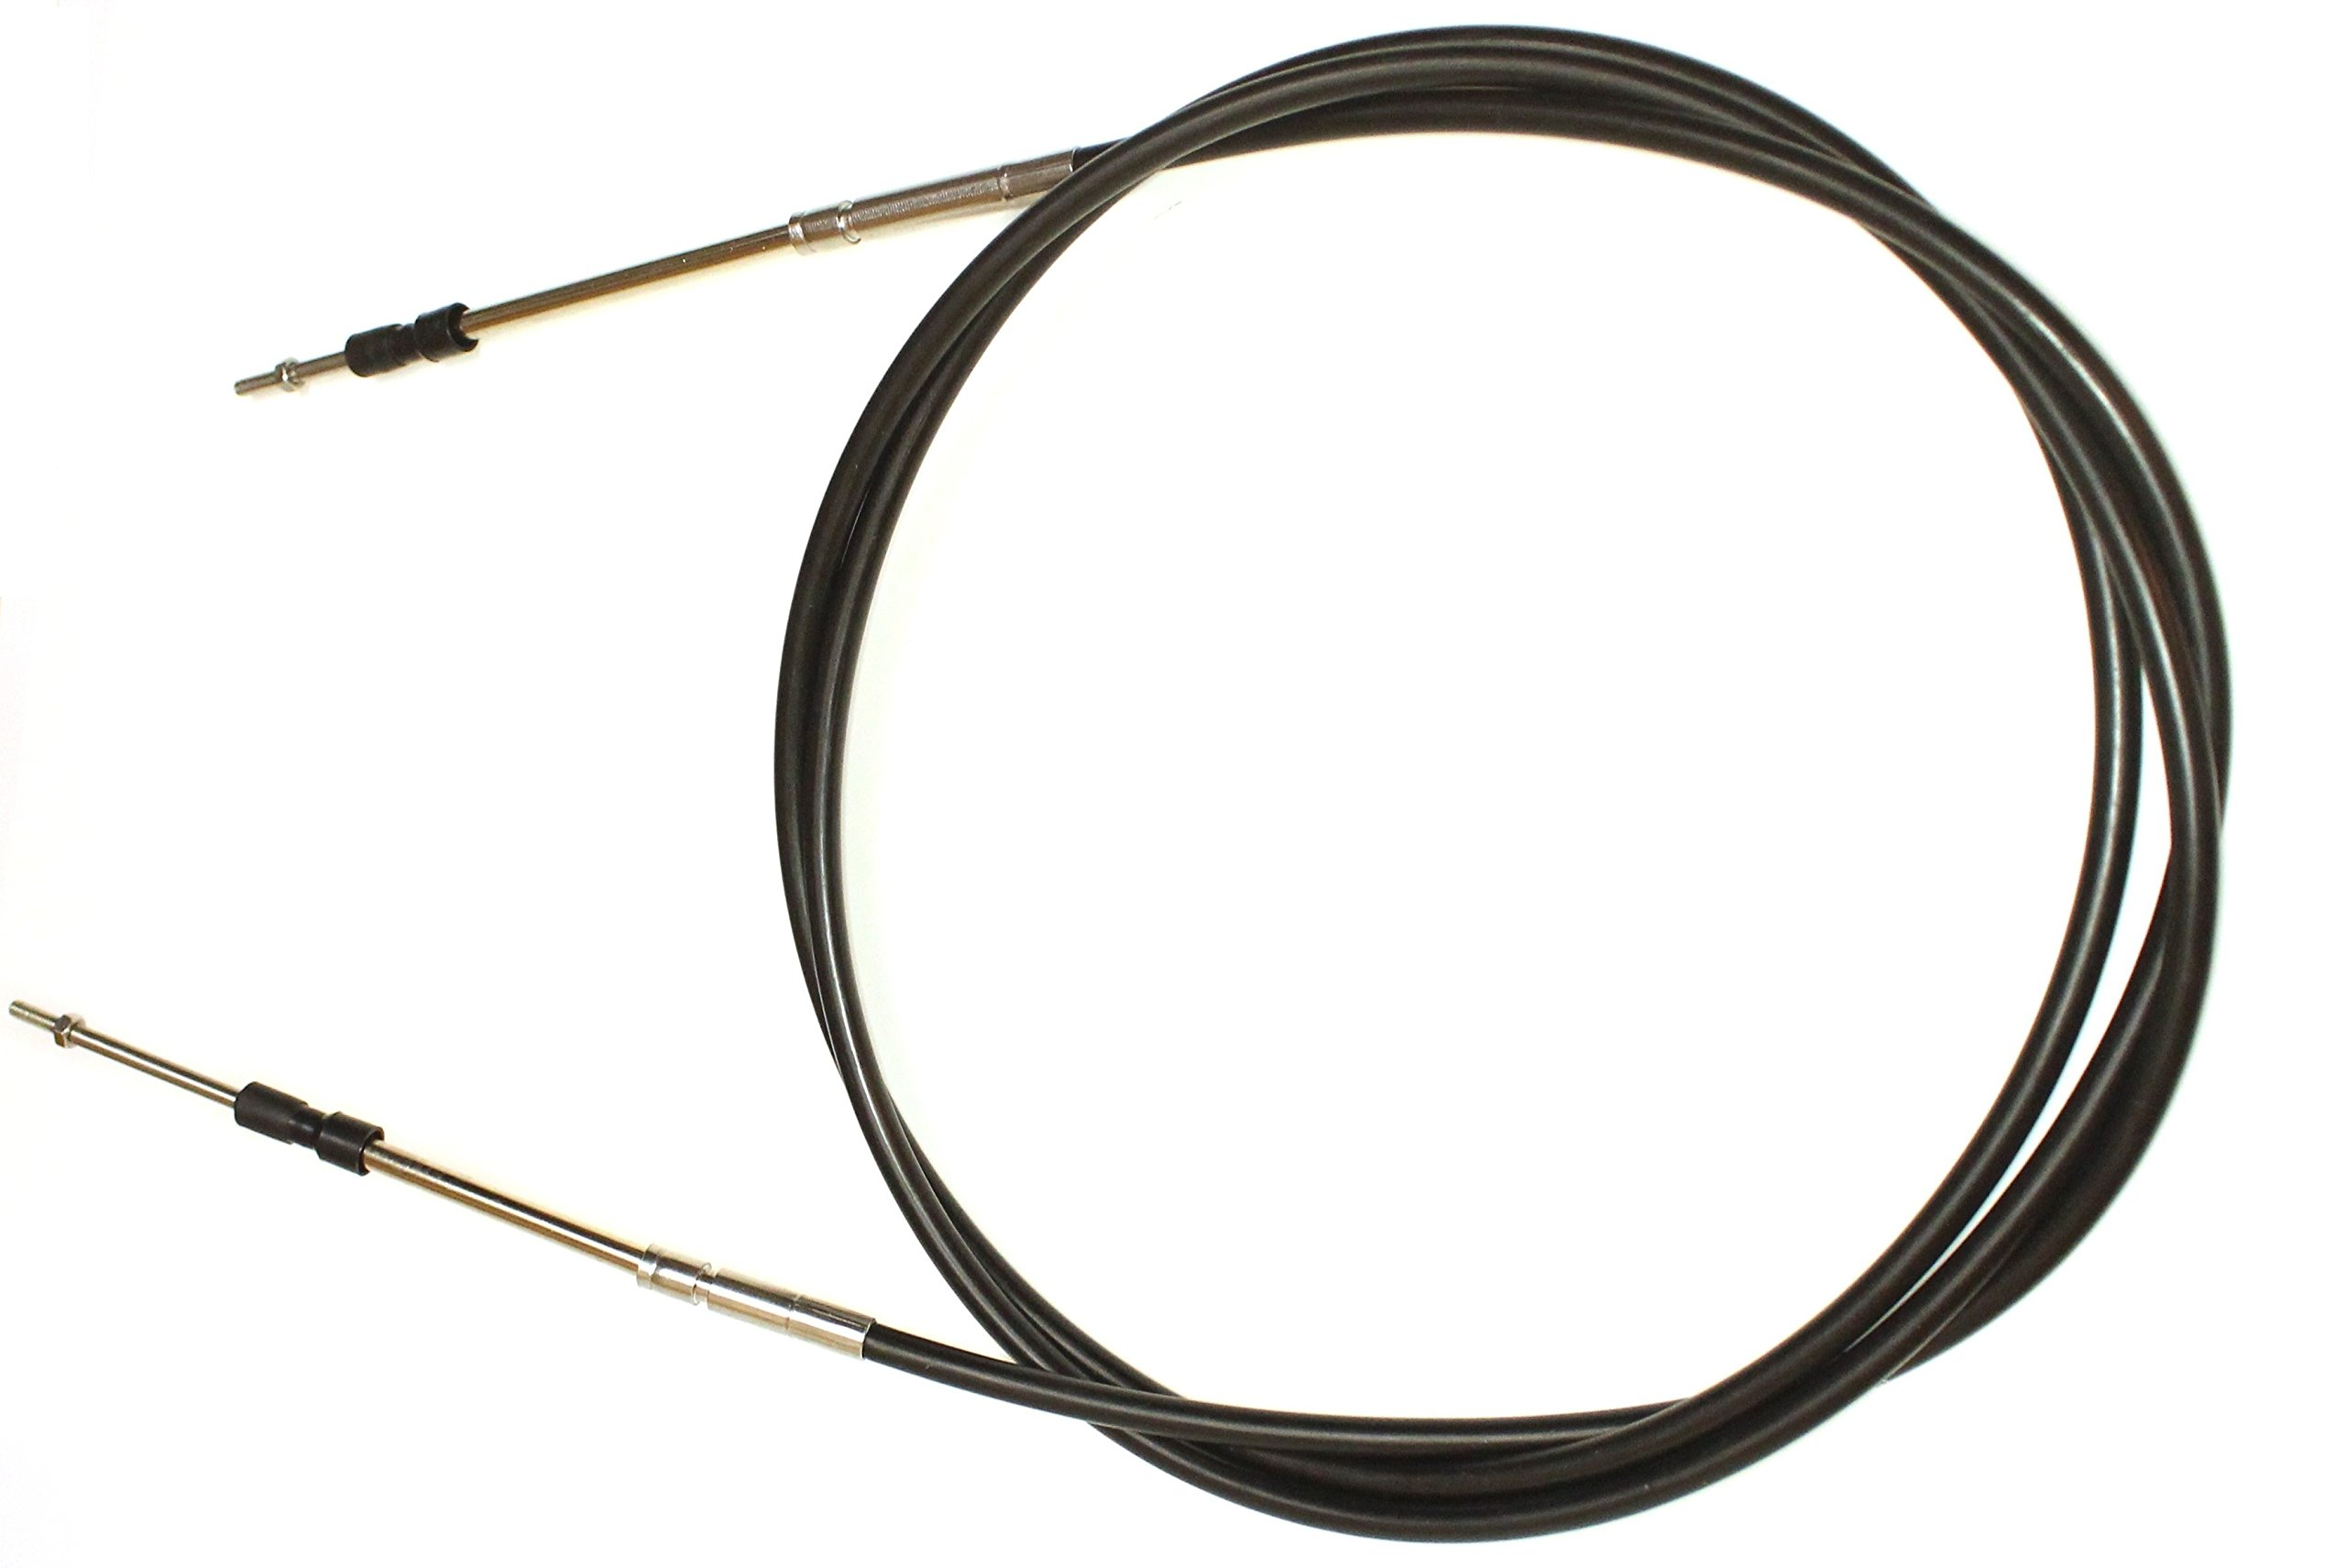 Yamaha Steering Cable F0x-u1481-10-00 by JSP Manufacturing